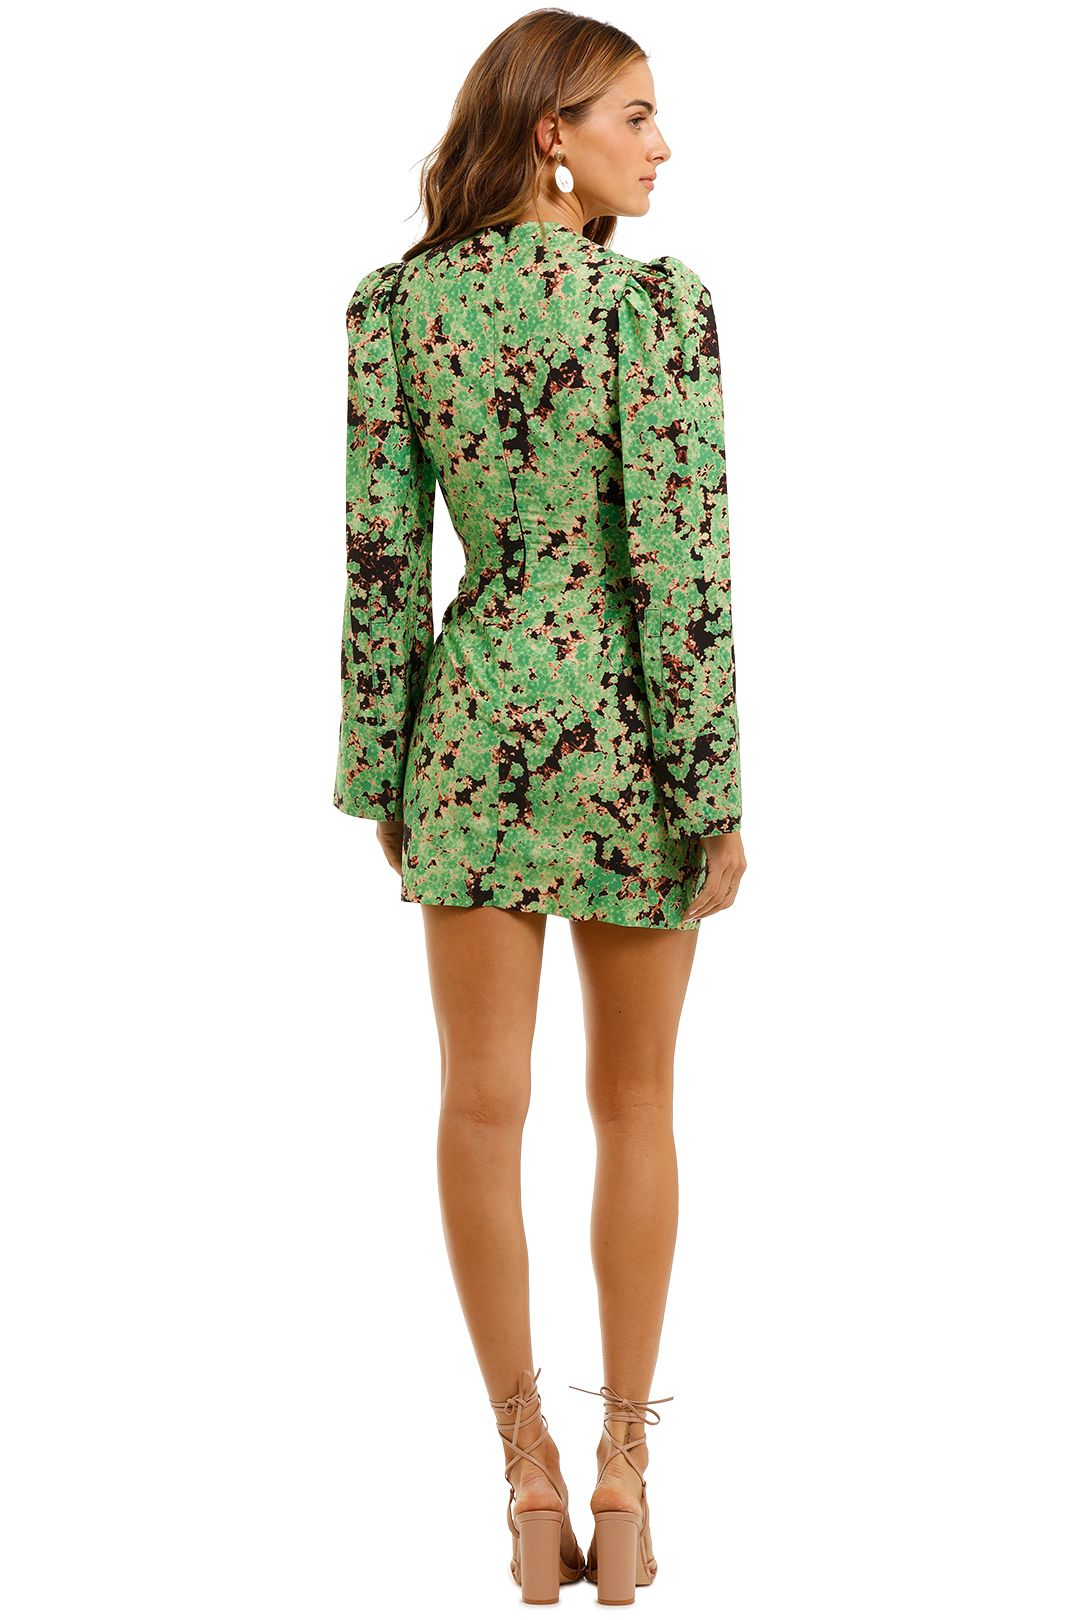 Camilla and Marc Oceo Mini Wrapdress floral green